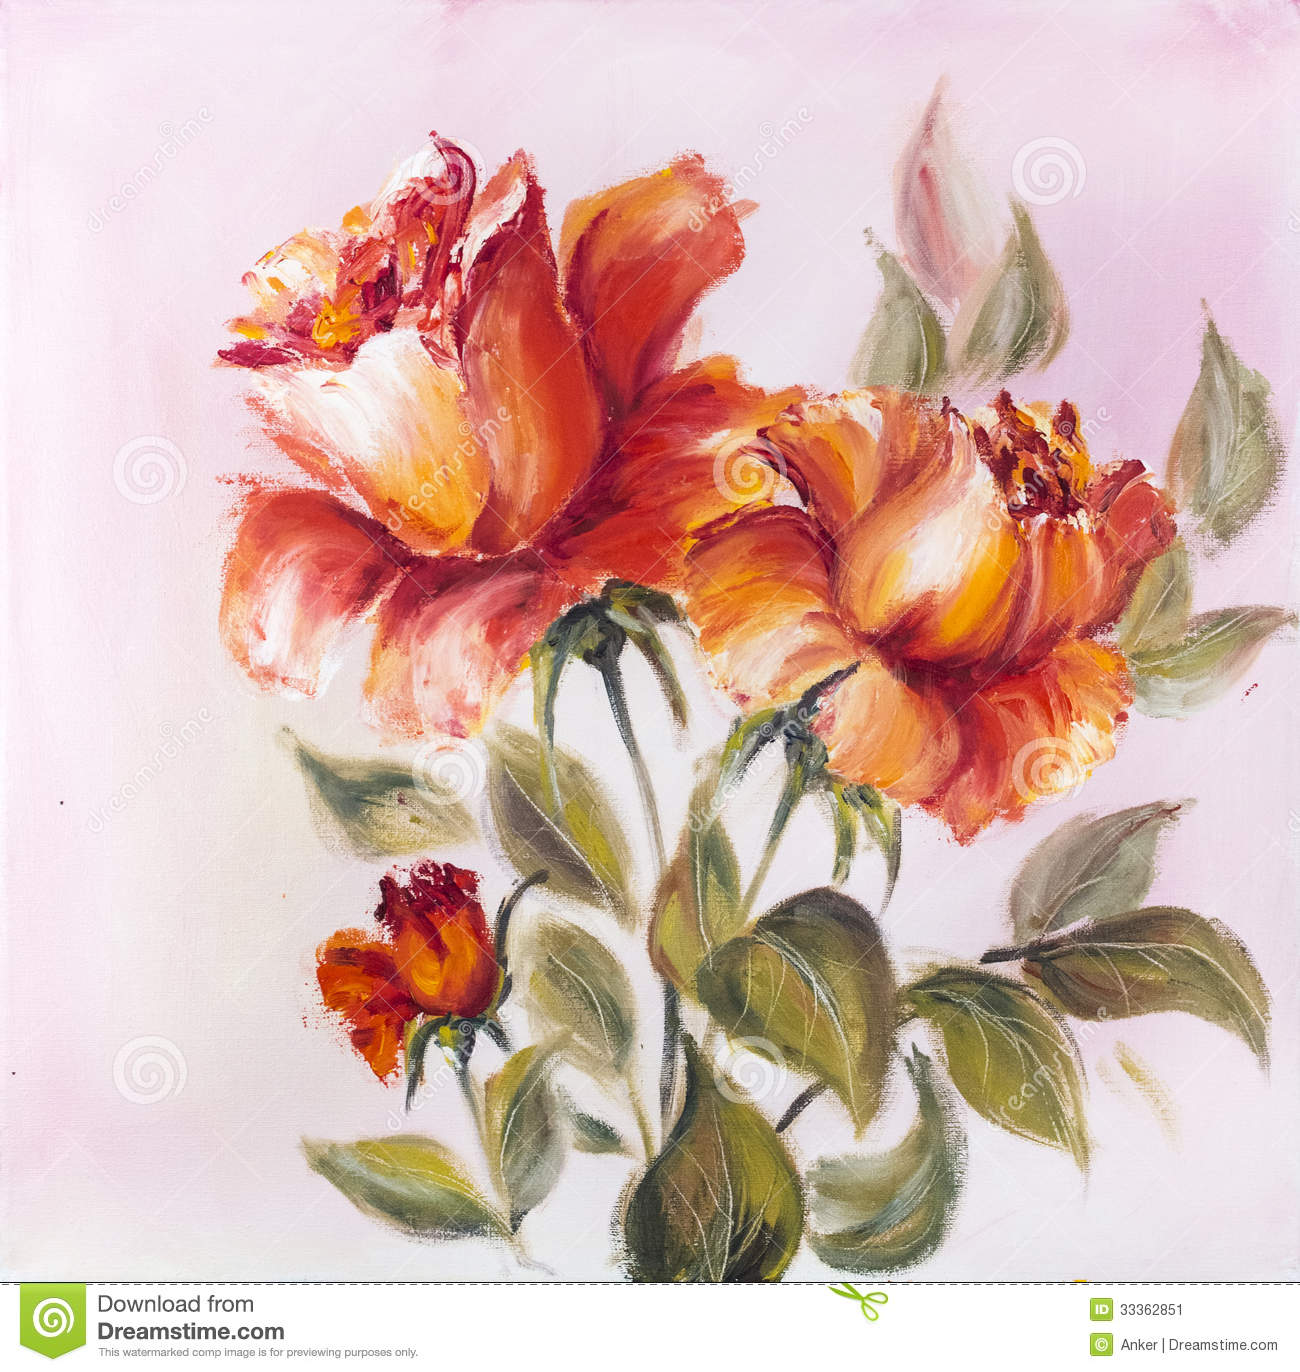 Beautiful roses oil painting stock illustration for How to paint flowers with oil paint